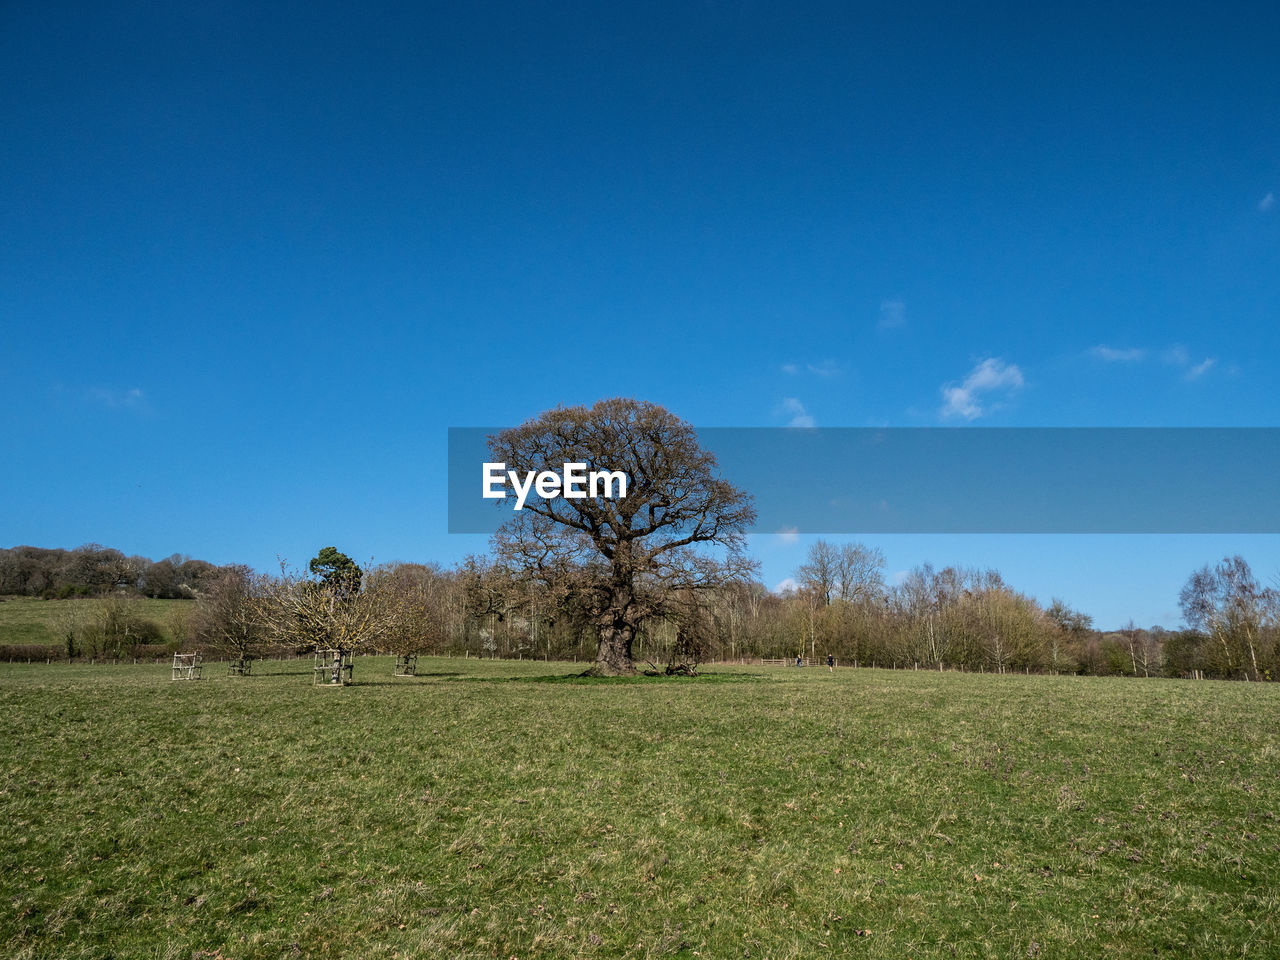 plant, sky, tree, field, land, landscape, environment, tranquility, tranquil scene, beauty in nature, blue, scenics - nature, grass, nature, non-urban scene, day, growth, green color, no people, copy space, outdoors, isolated